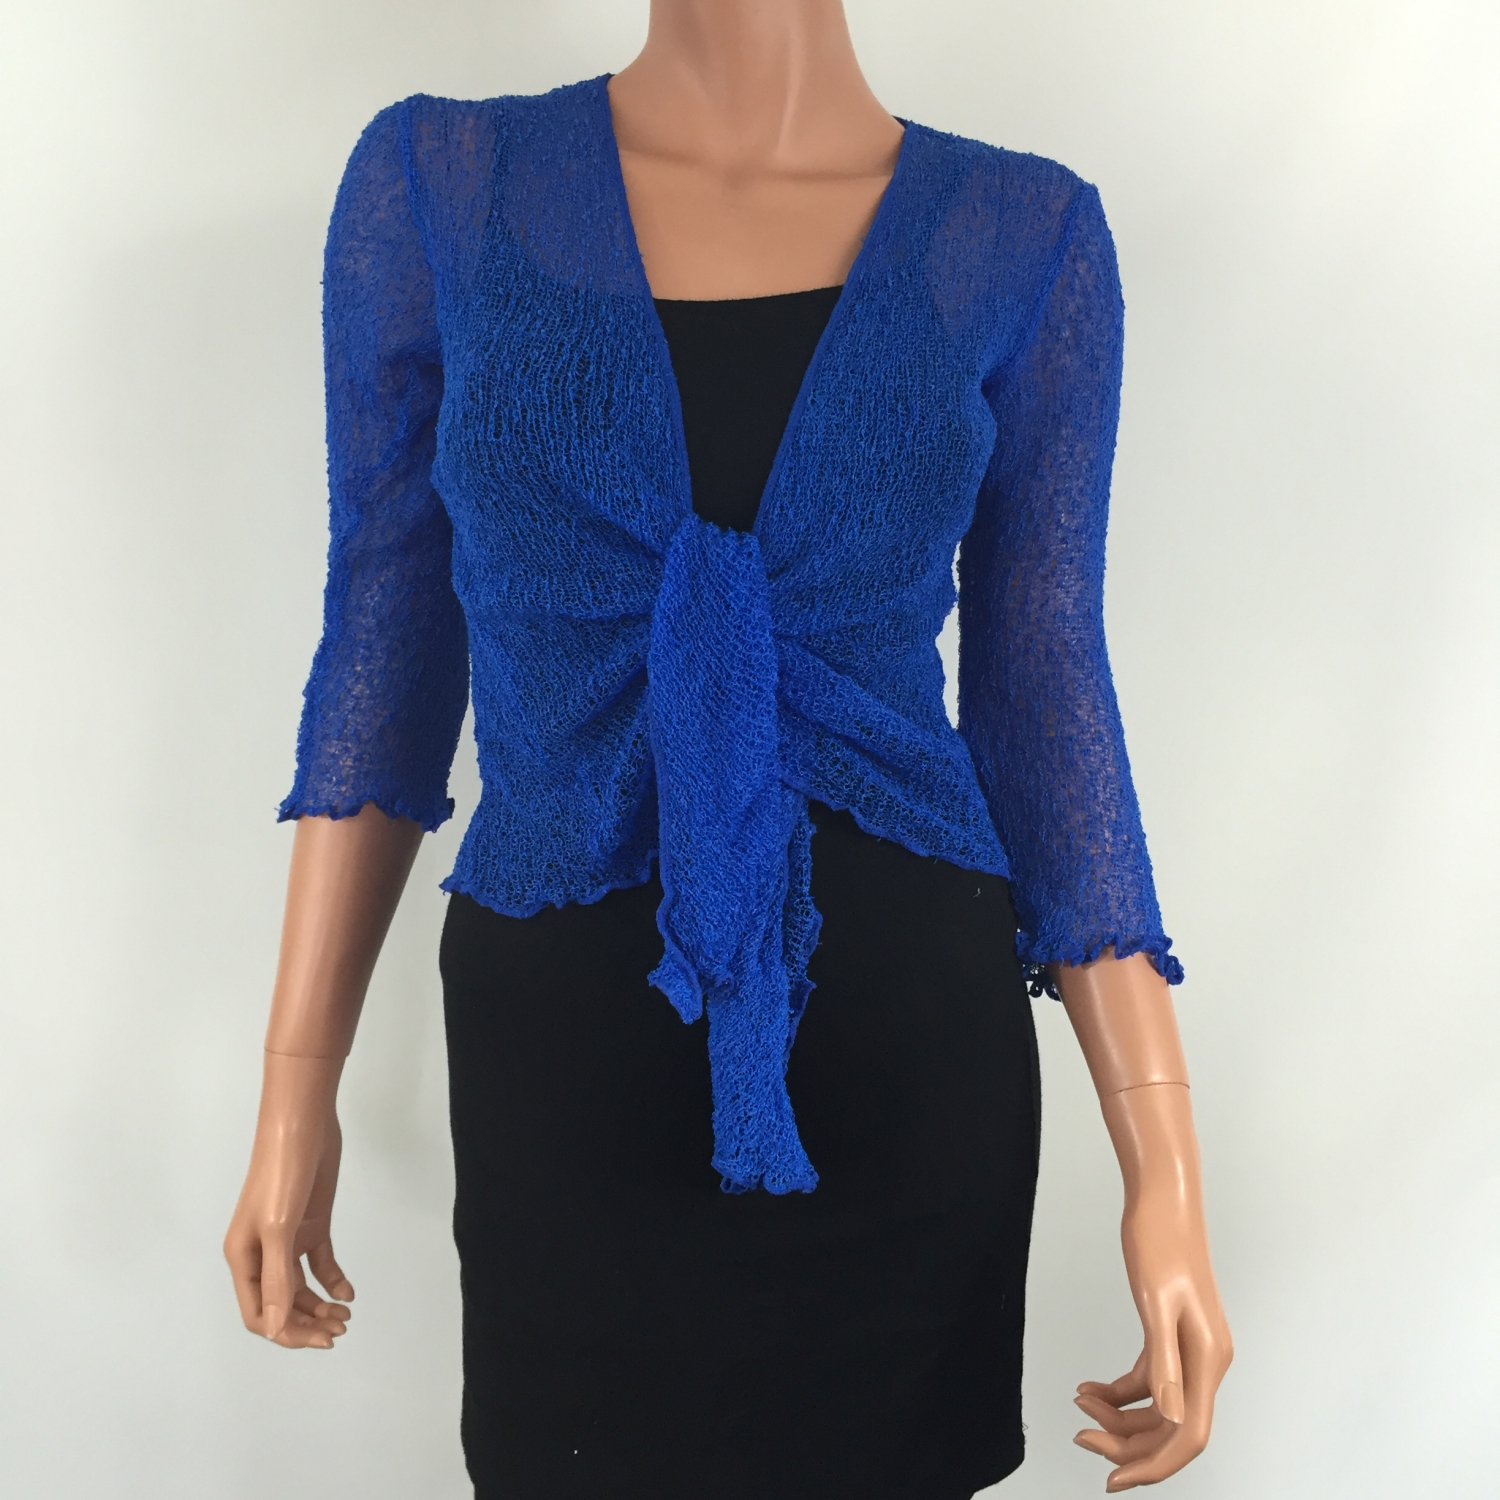 Rated 1 out of 5 by Cold_in_WI from Shrug cardigan Kim Gravel I was expecting a shrug with some shape and substance. This came thinner than a tshirt and very see through. Sorry the blue and coral go back. Date published: /5(13).